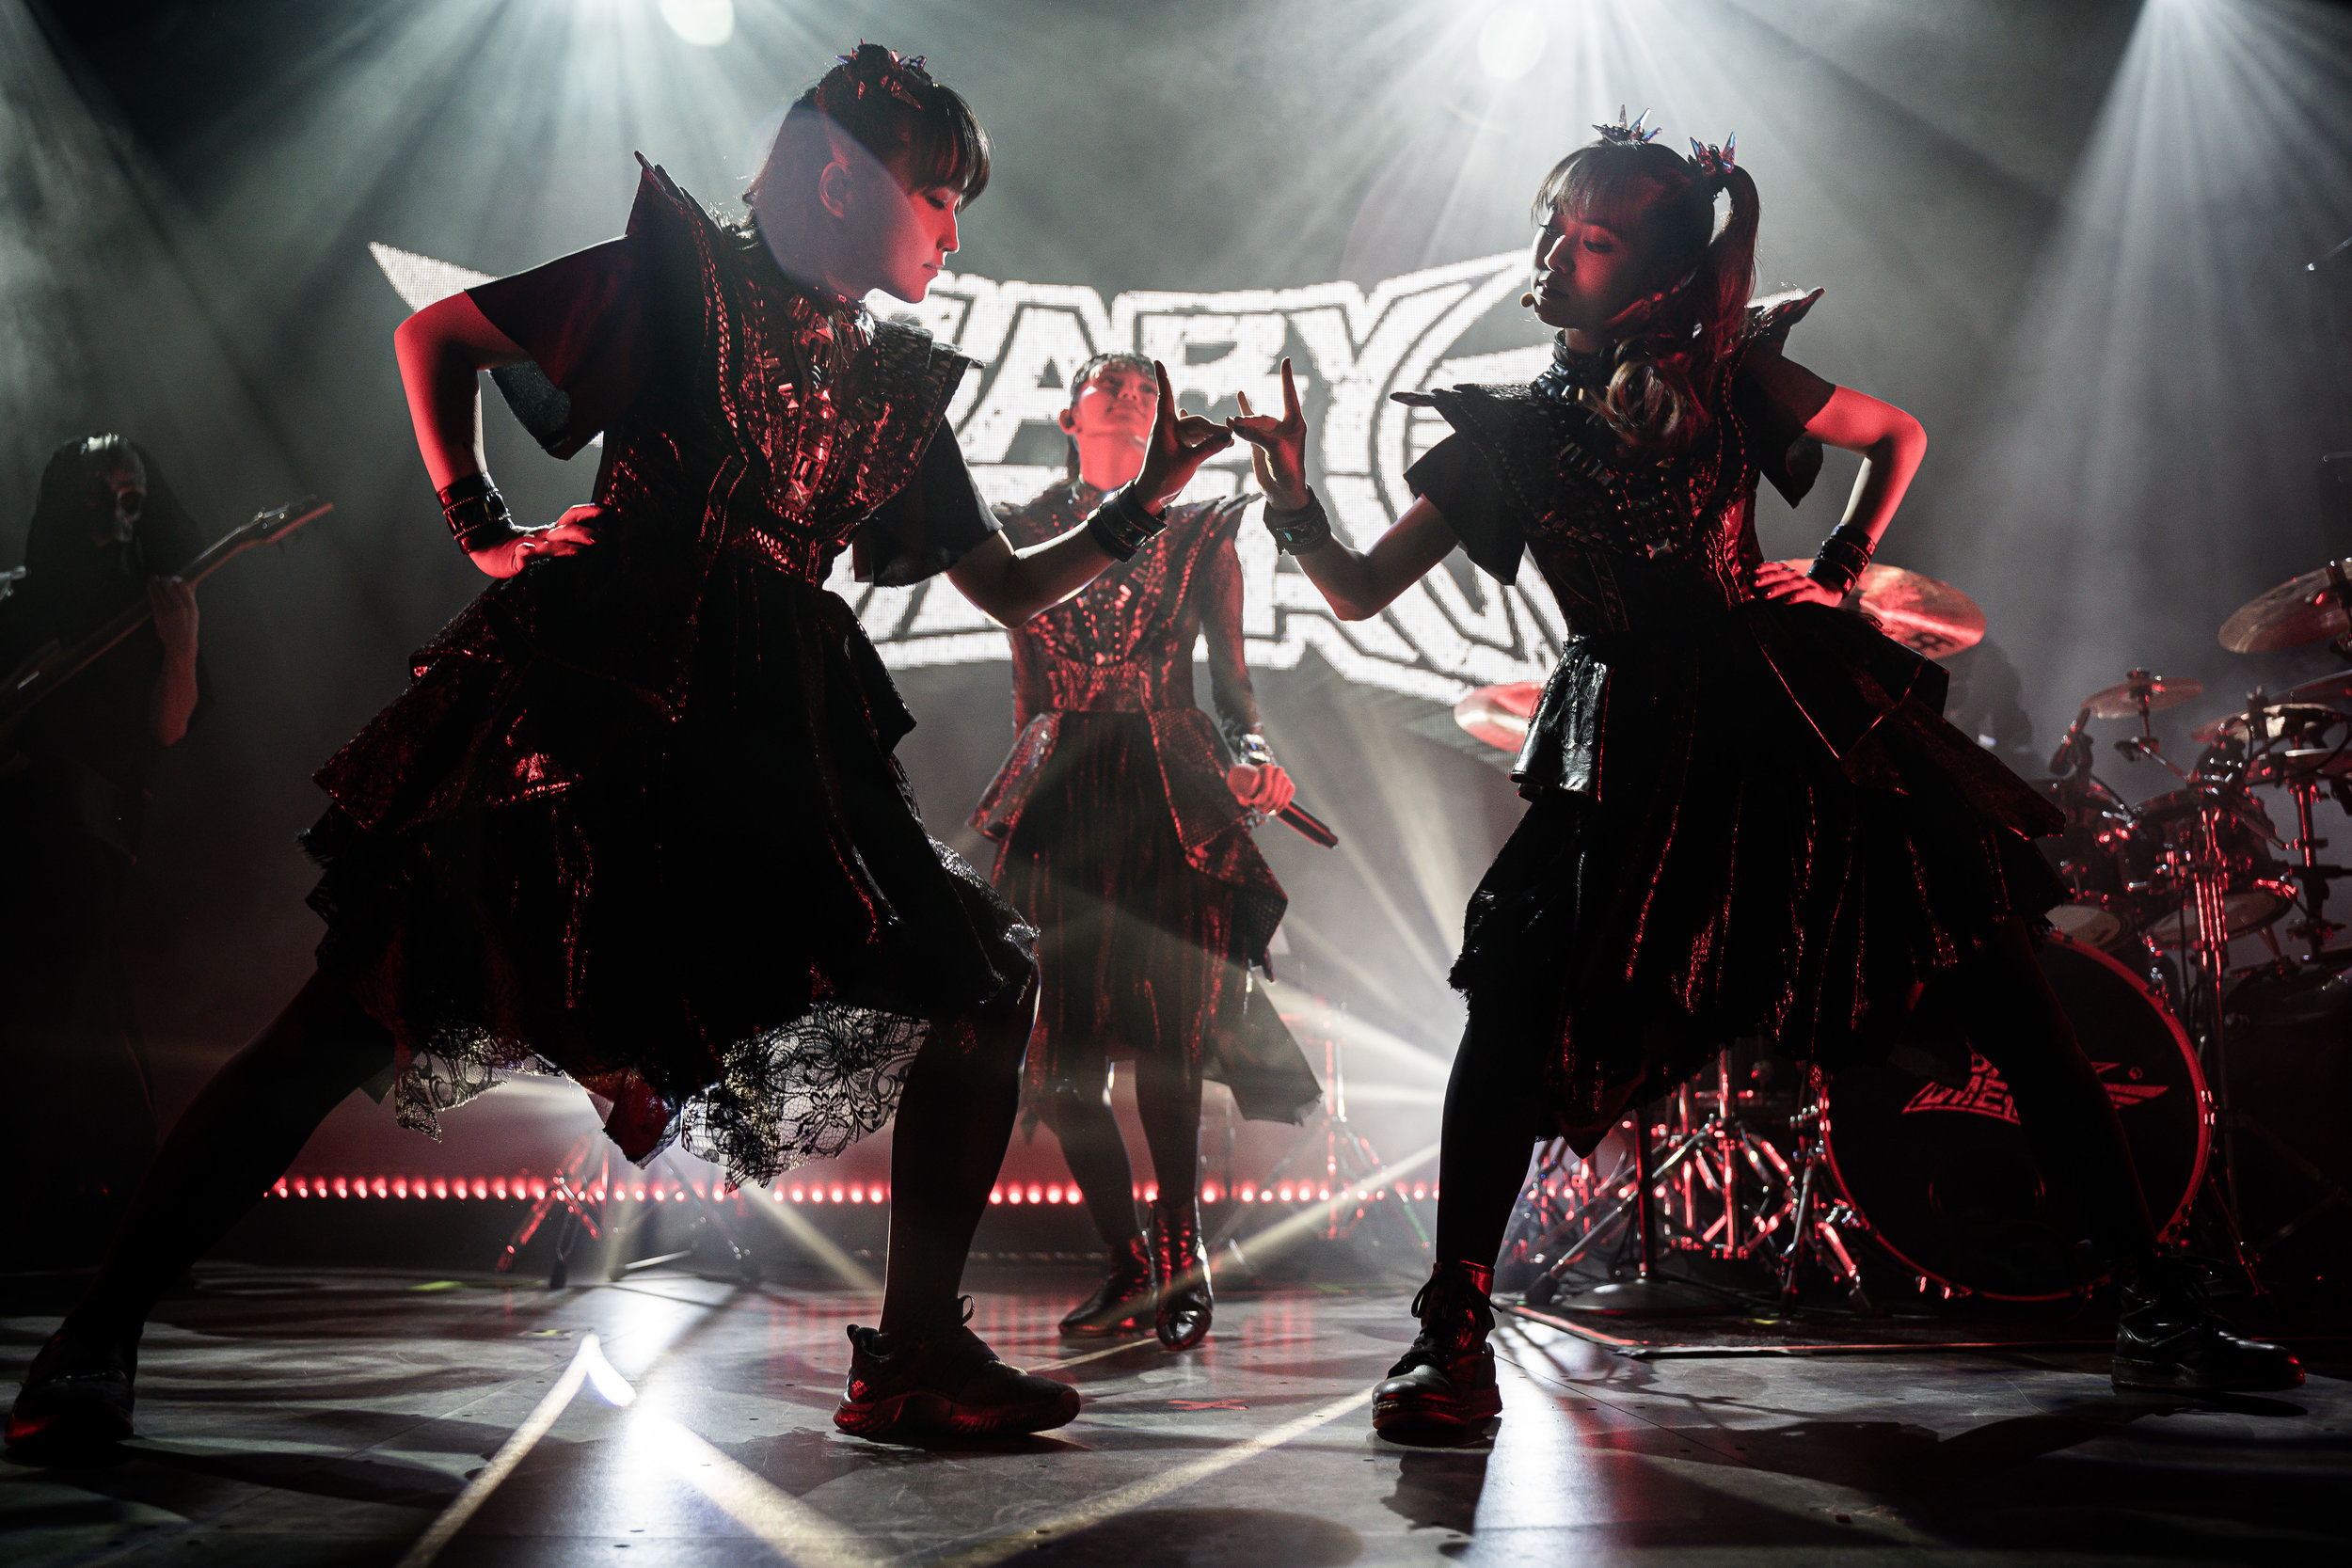 BABYMETAL performing at The Ogden Theatre (Photo Credit: Robert Castro)